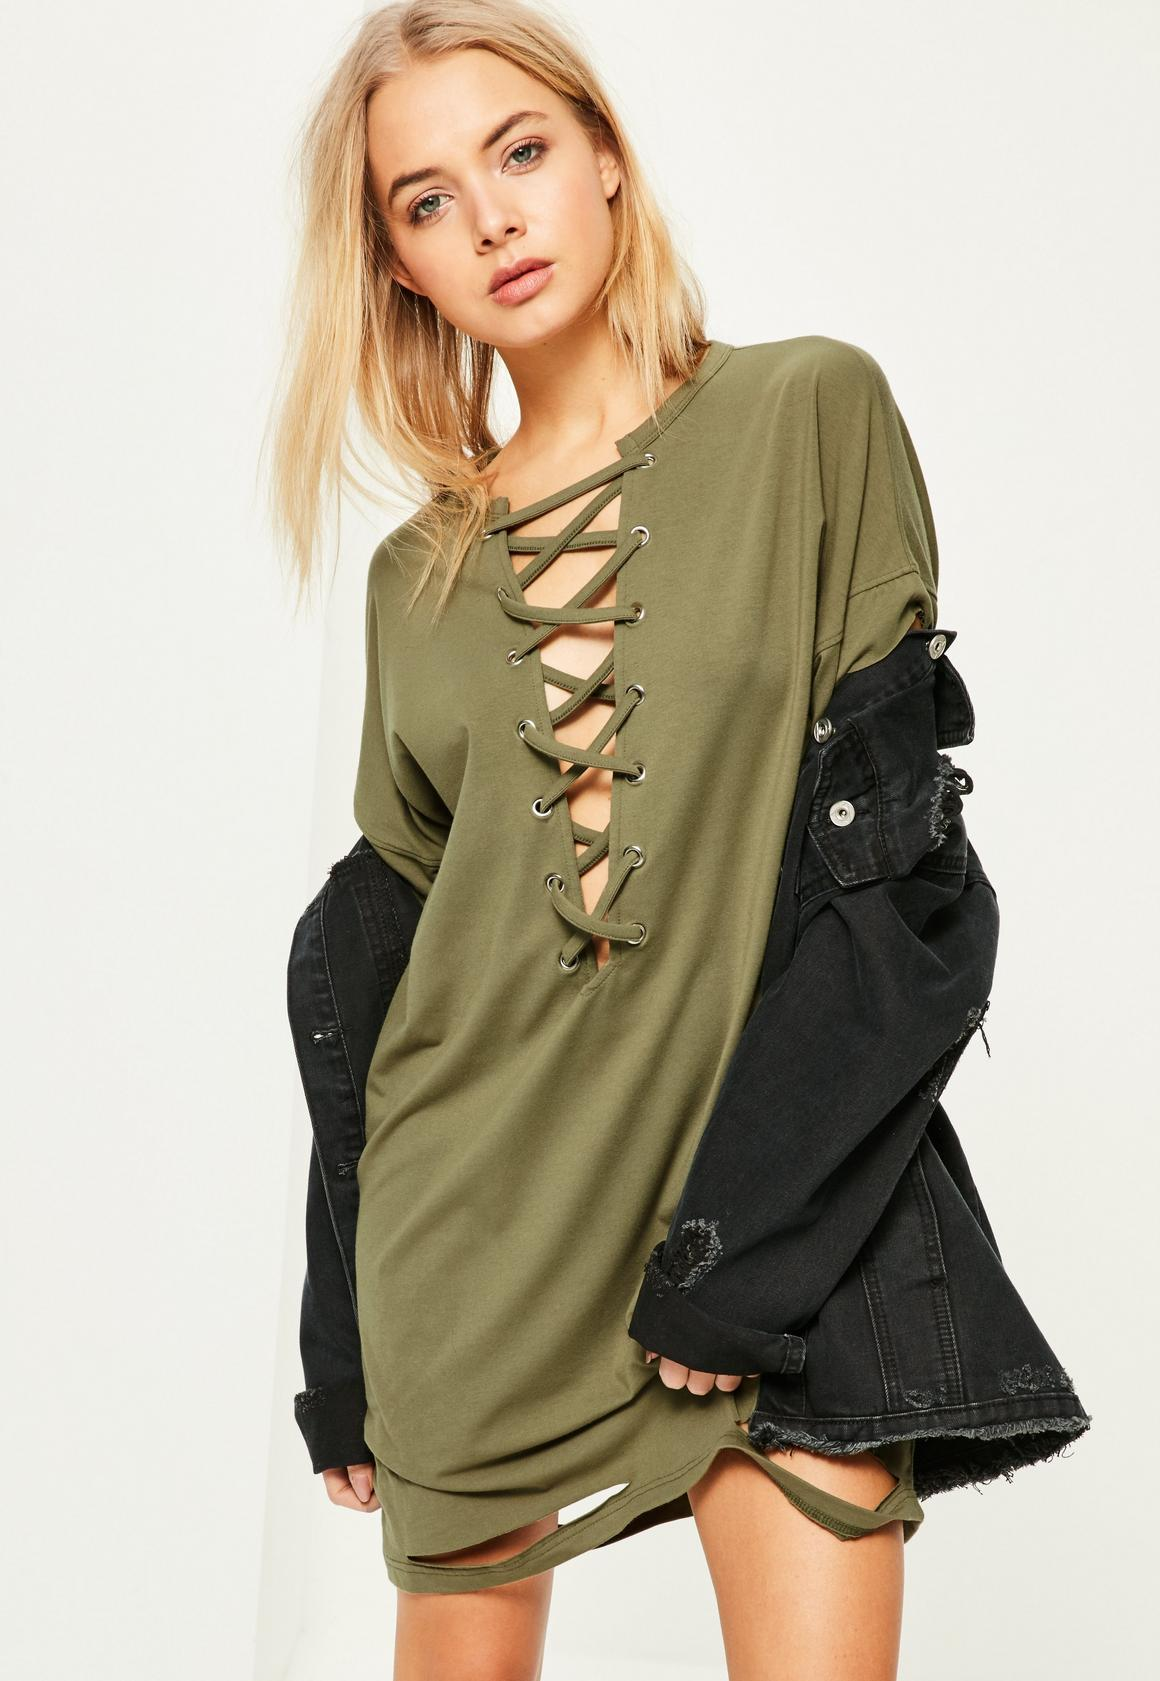 Khaki Lace Up Distressed T Shirt Dress - Missguided